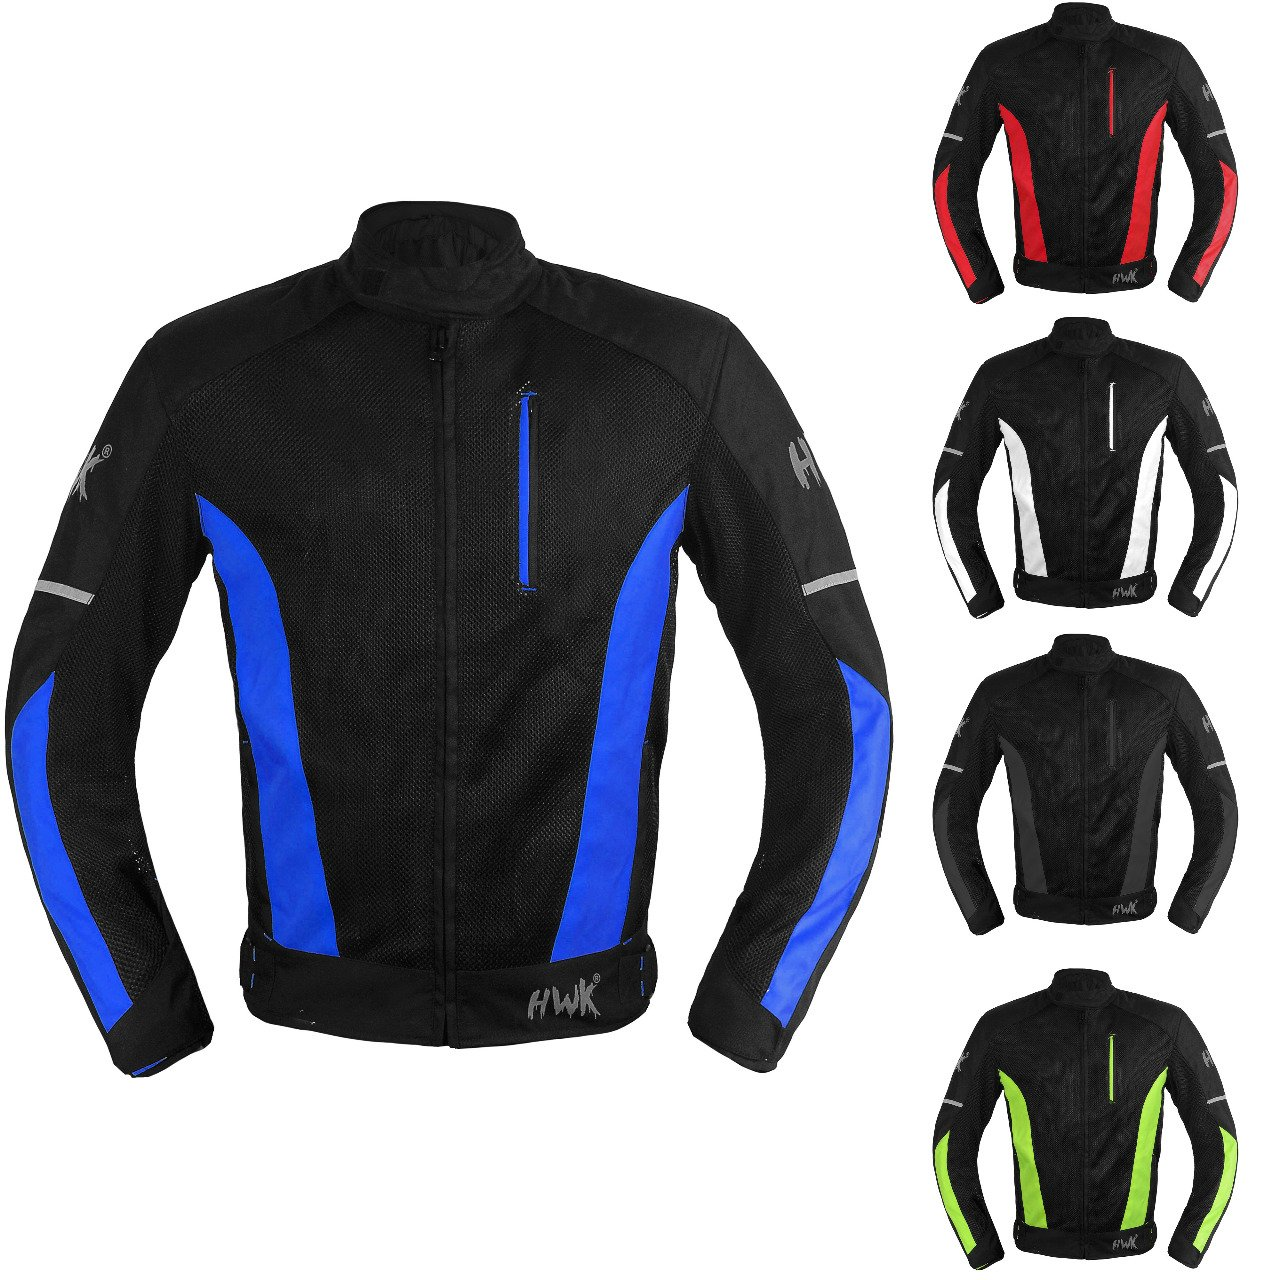 Mesh Motorcycle Jacket Textile Motorbike Summer Biker Air Jacket CE ARMOURED BREATHABLE (Small, Blue) HWK A1